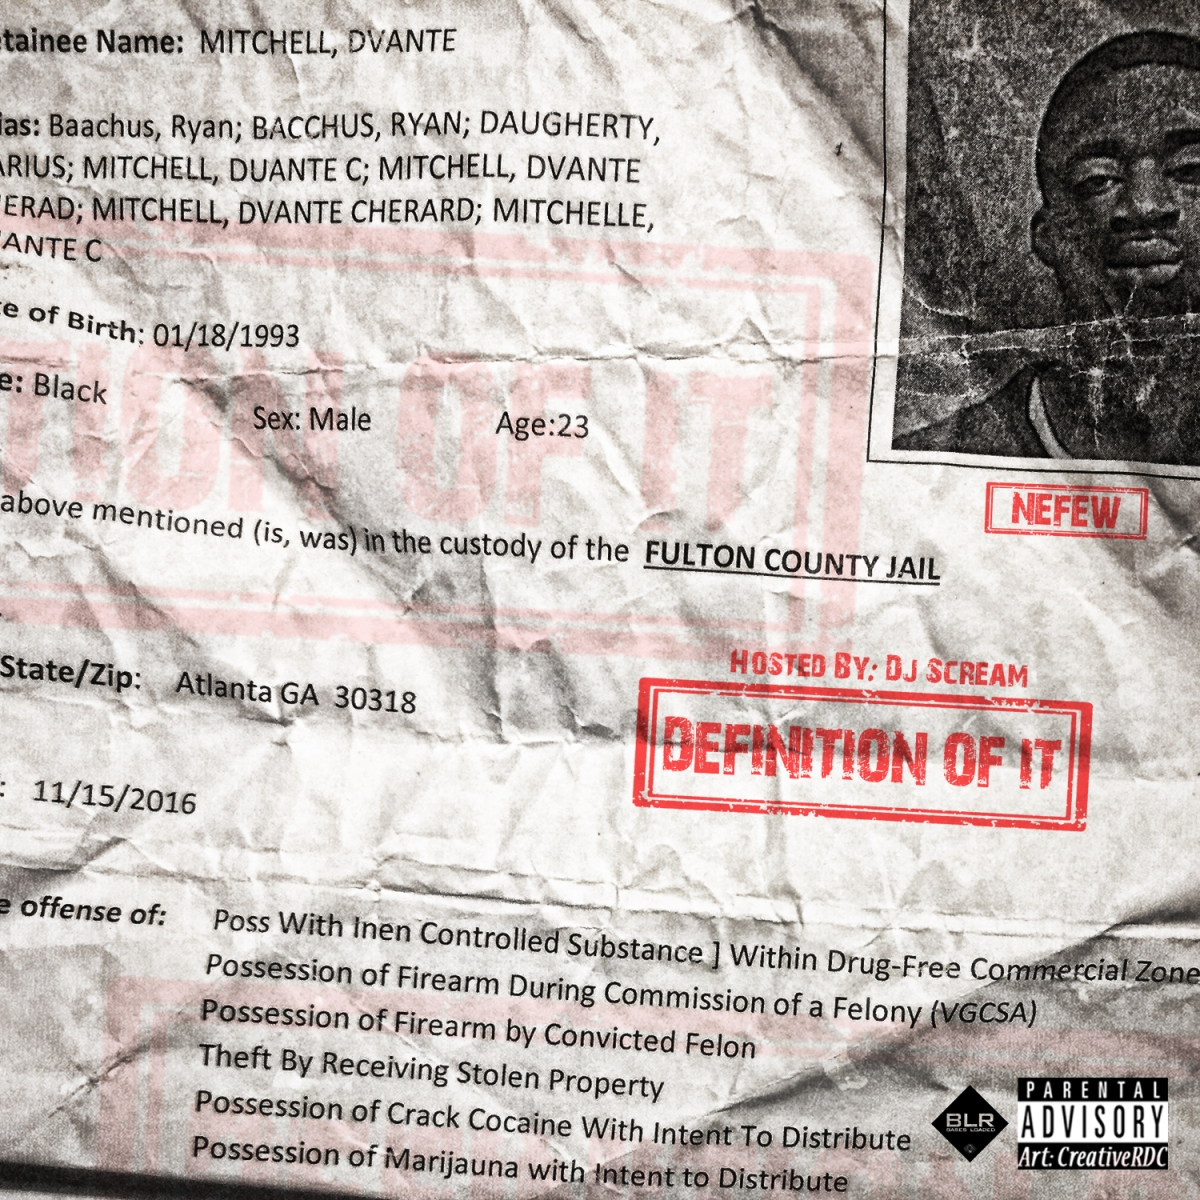 NEW EP: Nefew debuts 'Definition Of It' mixtape hosted by DJ Scream